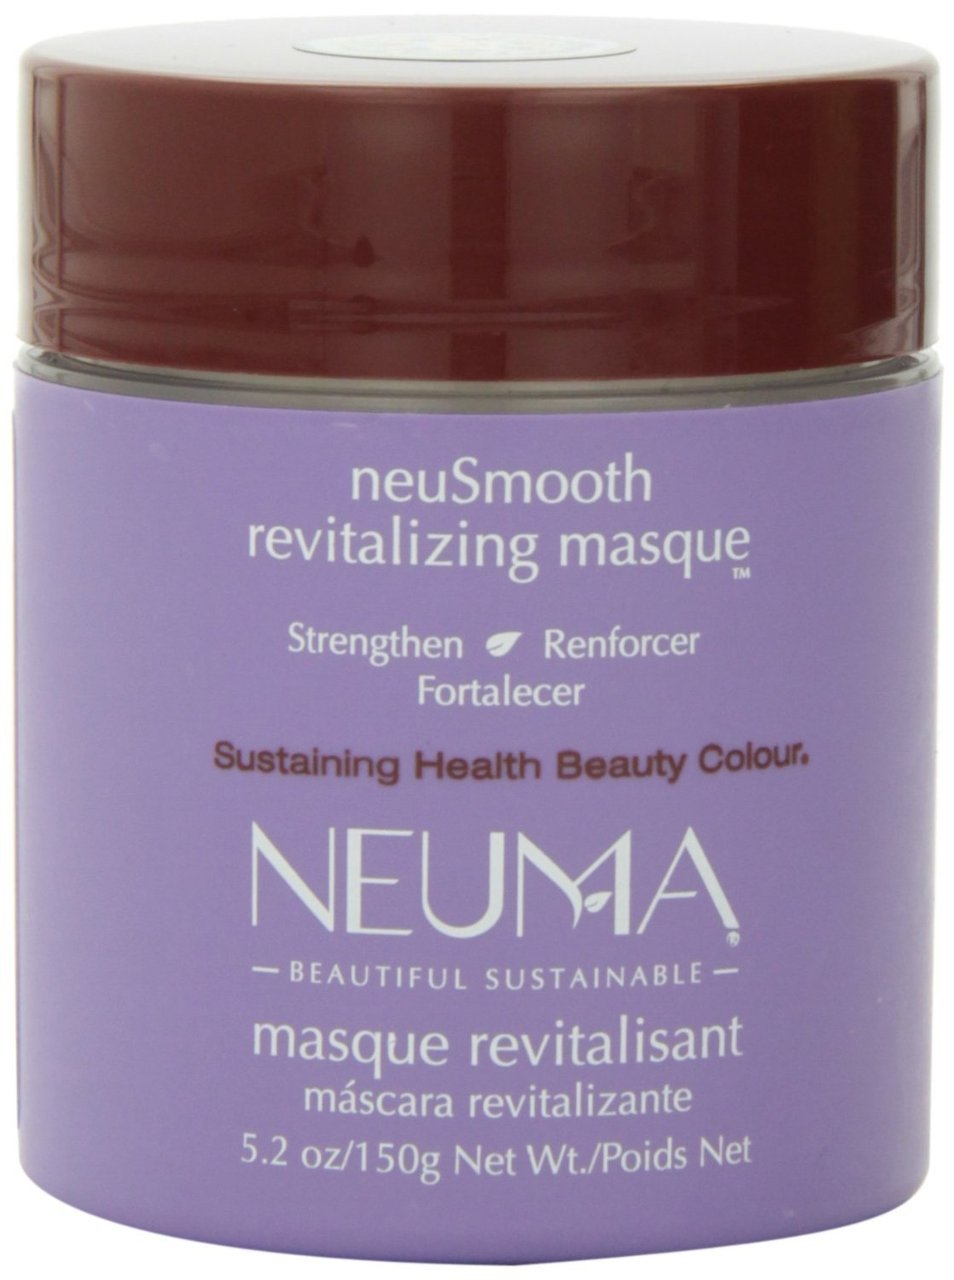 Neusmooth revitalizing masque  72931